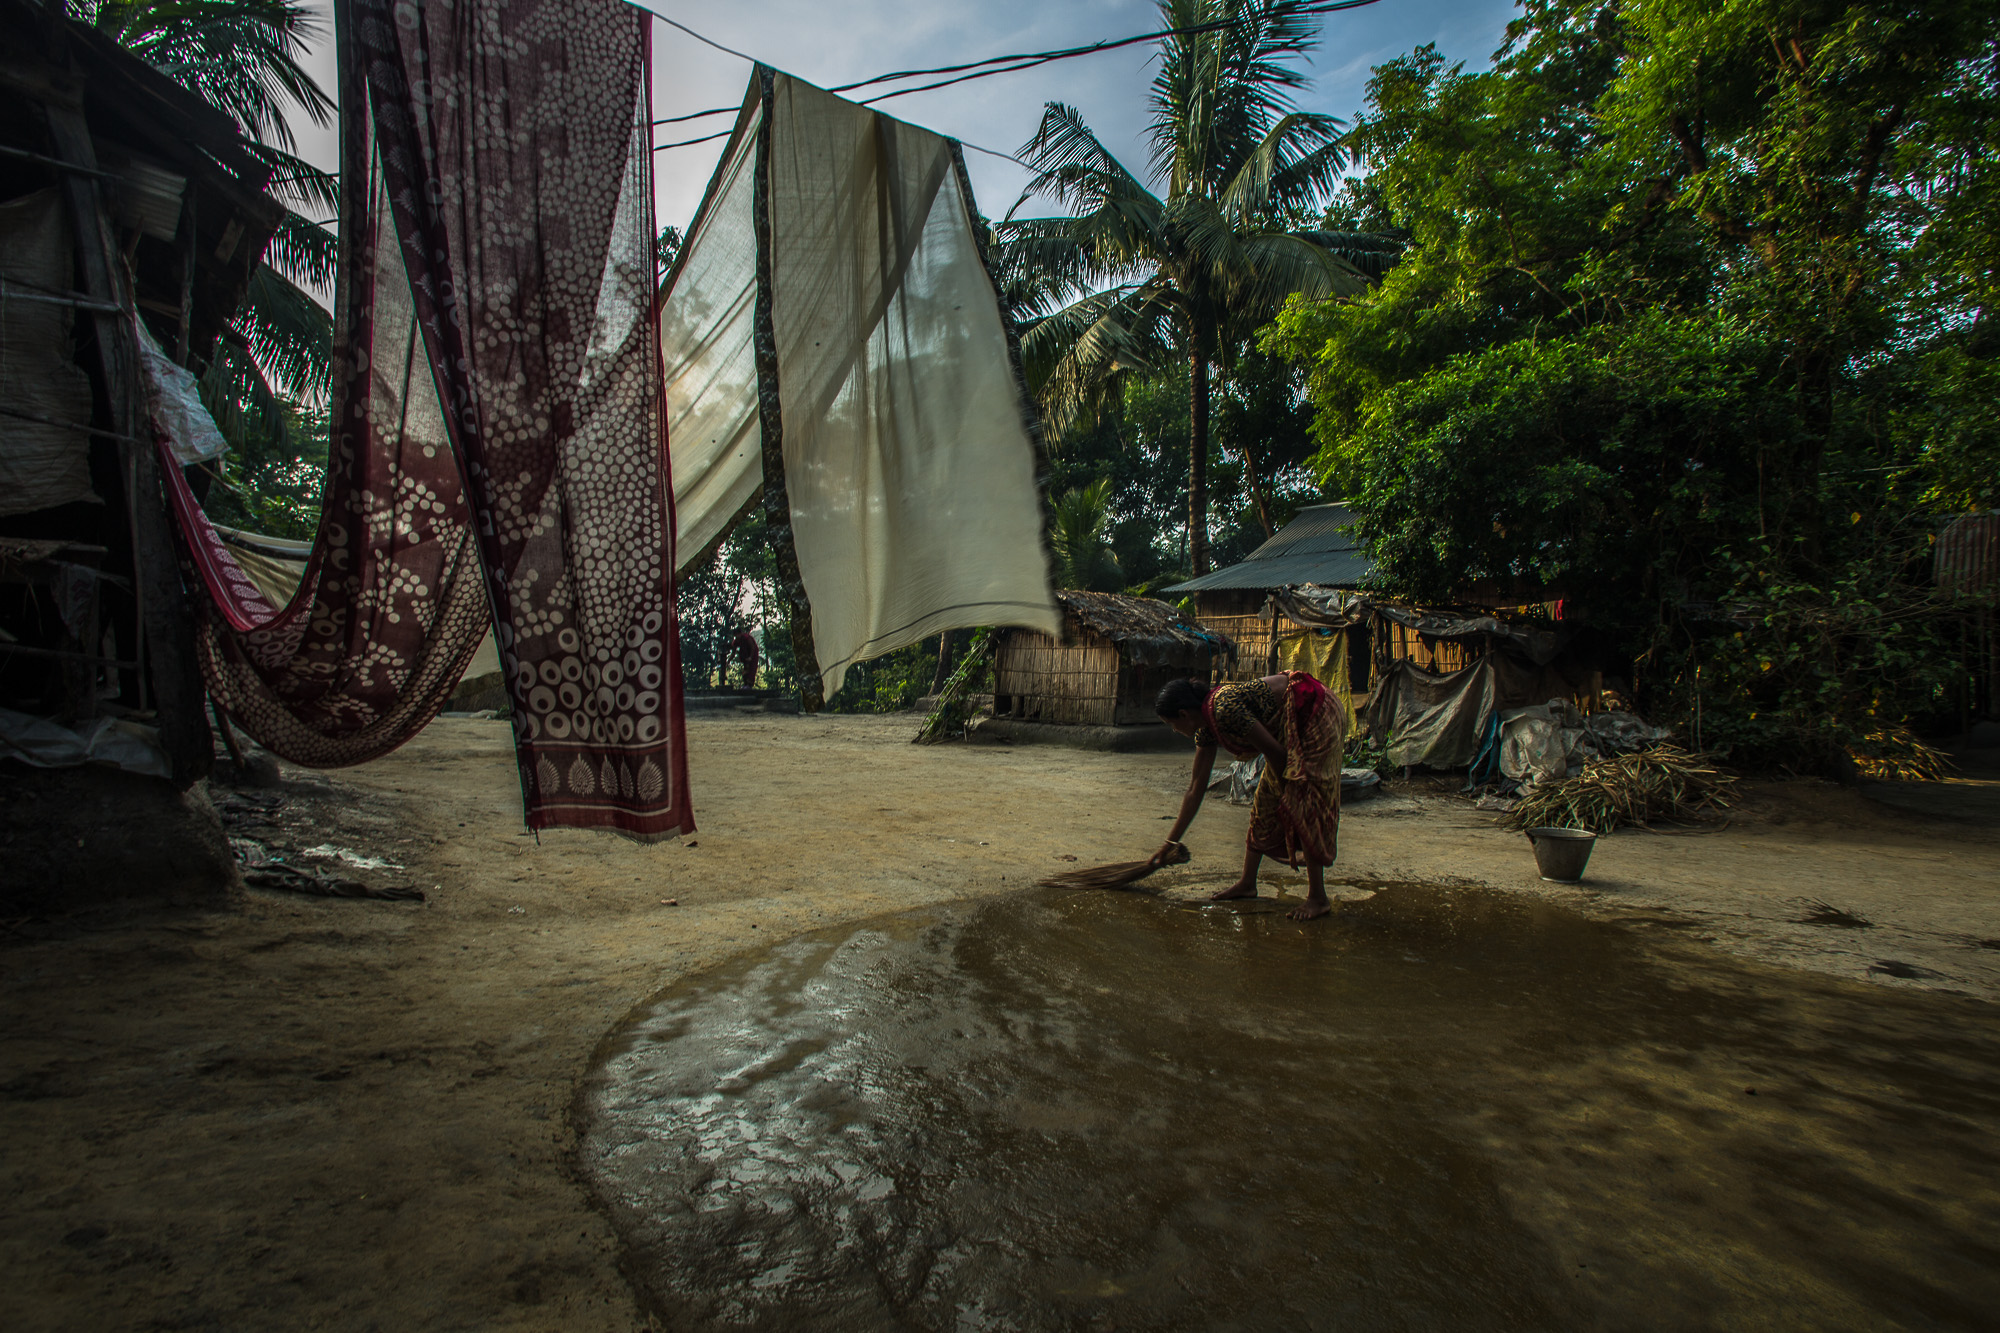 Taroni's wife, Baby Shakiri, spreads their rice harvest on the ground to dry after soaking it in a pond and boiling it.